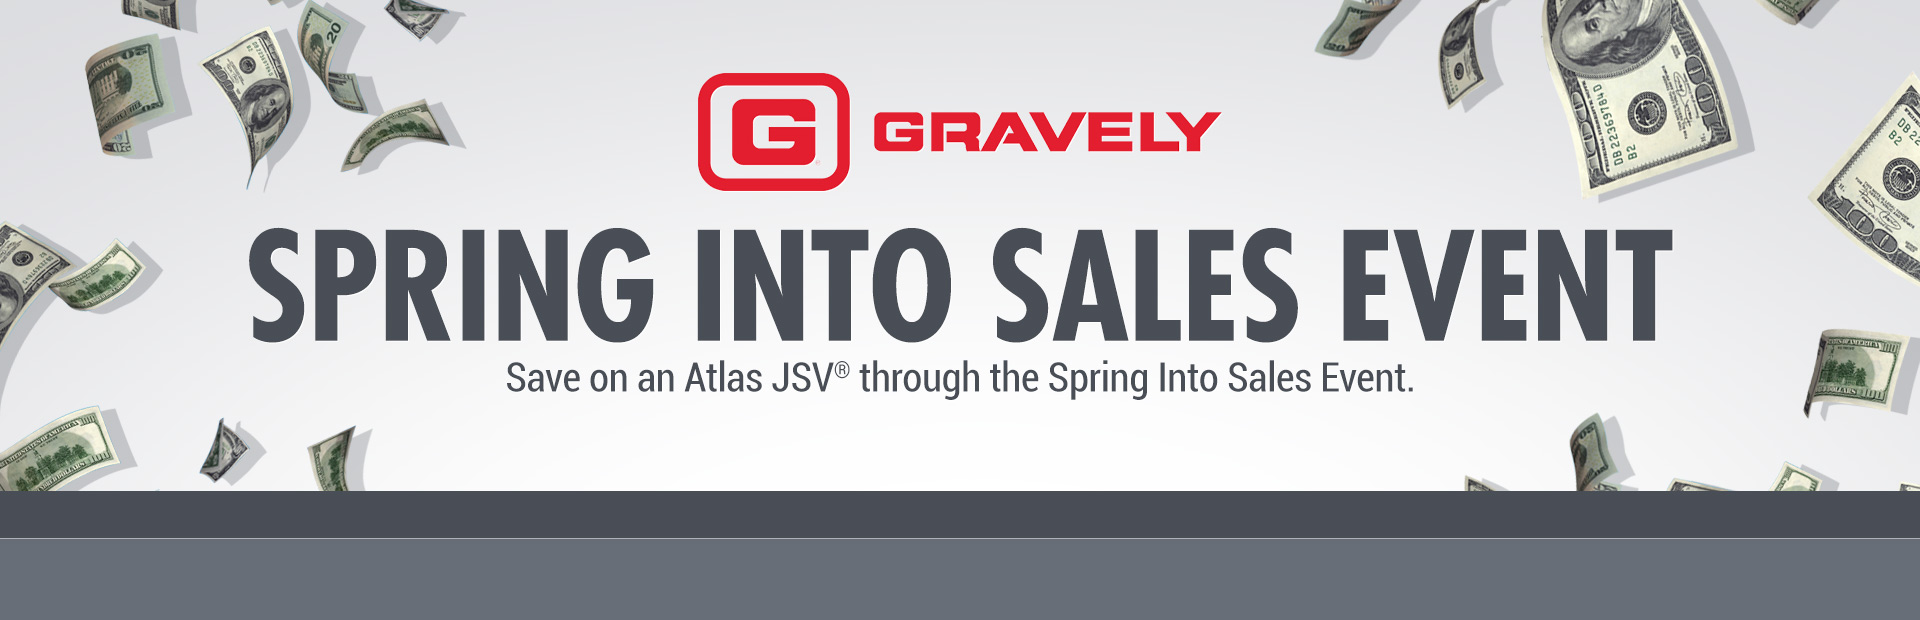 Gravely: Spring Into Sales Event